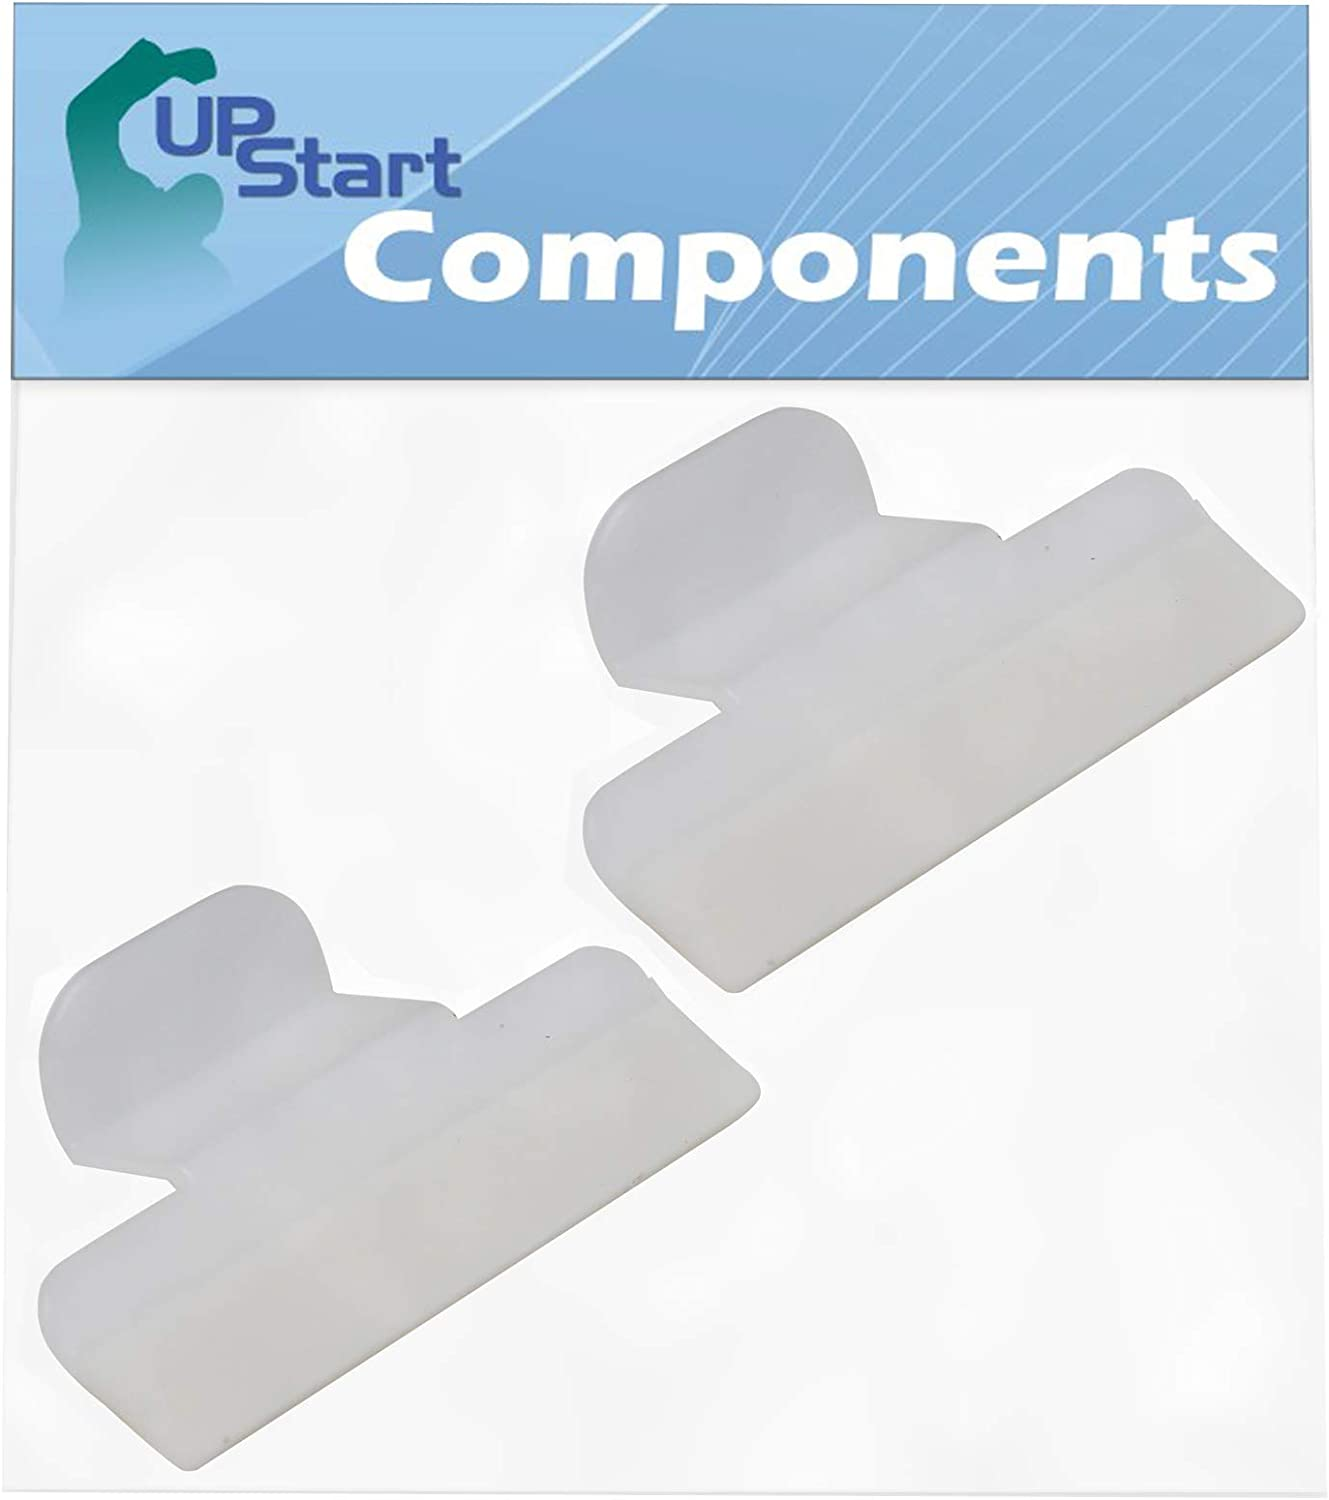 4 Pieces 154701001 Dishwasher Splash Shield Replacement for Frigidaire FBD2400KQ3A - Compatible with 154701001 Splash Shield Kit